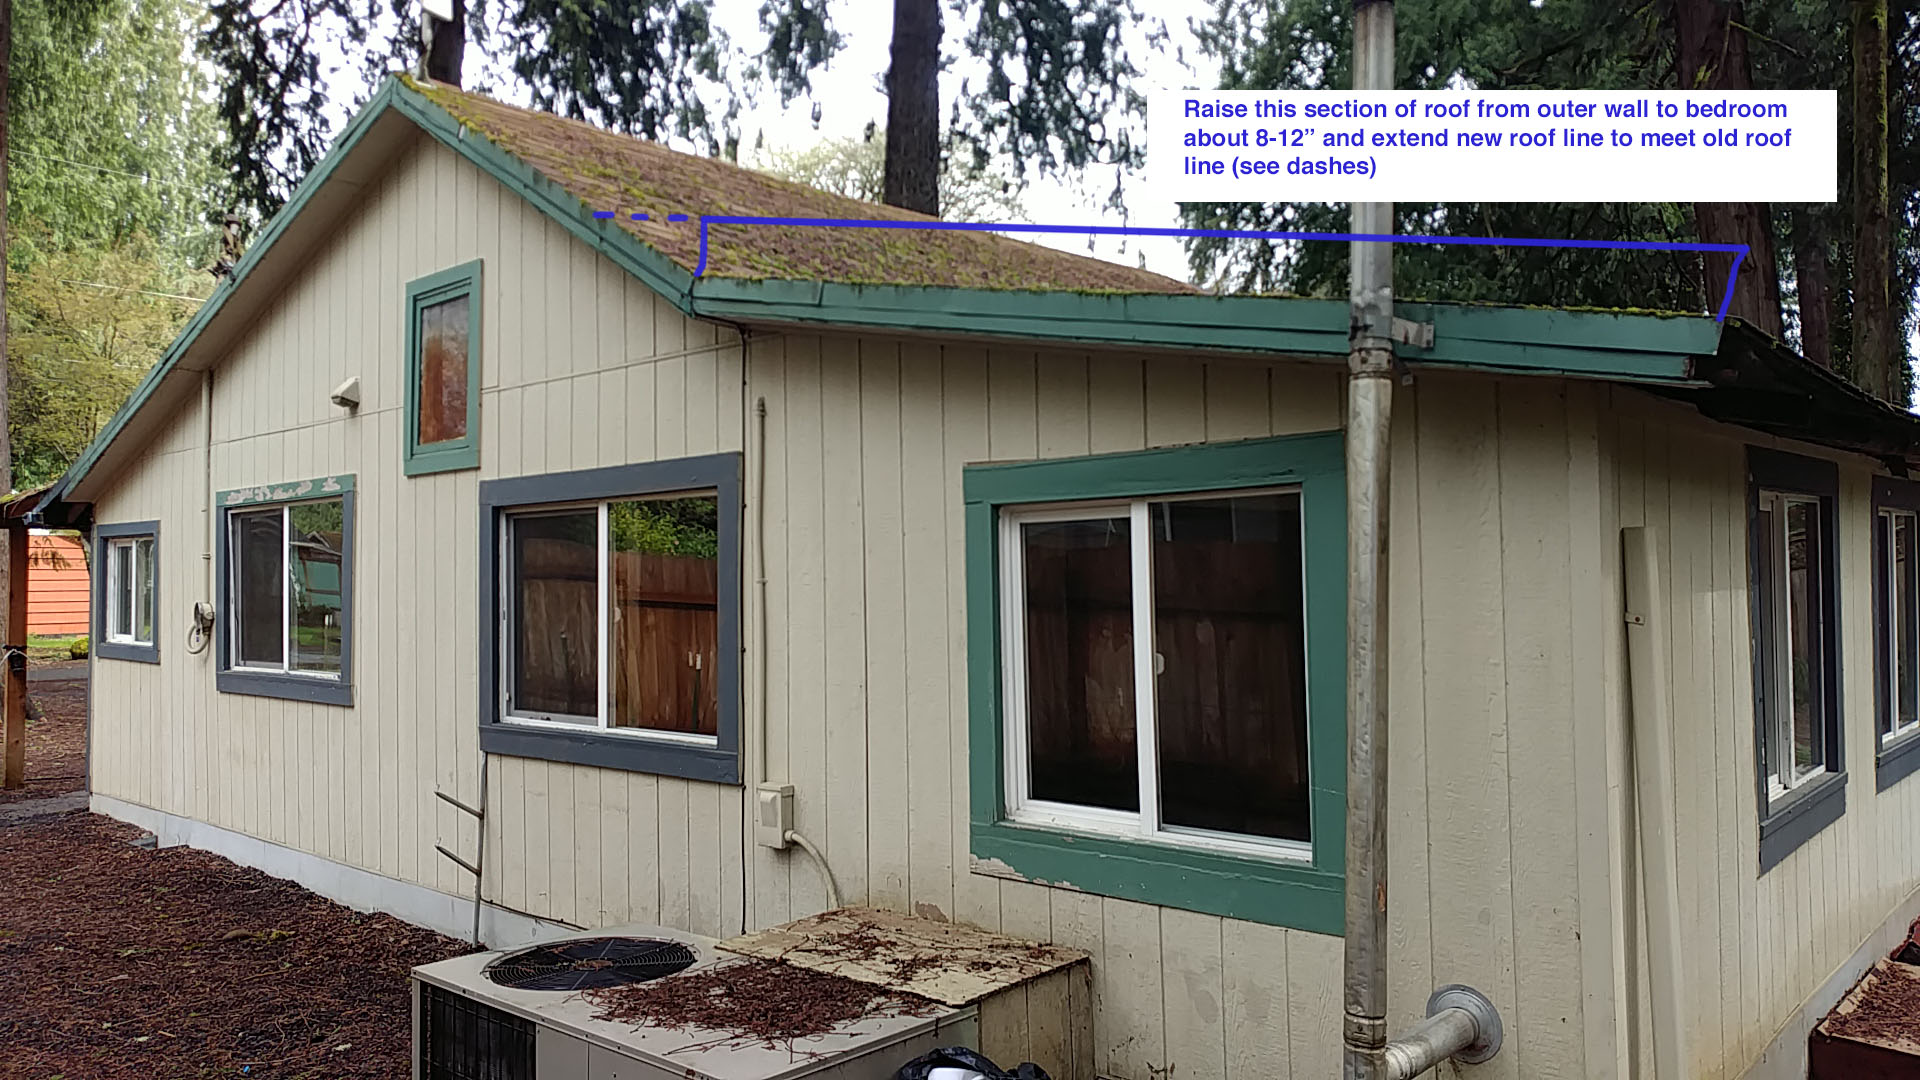 new roof line side of house.jpg